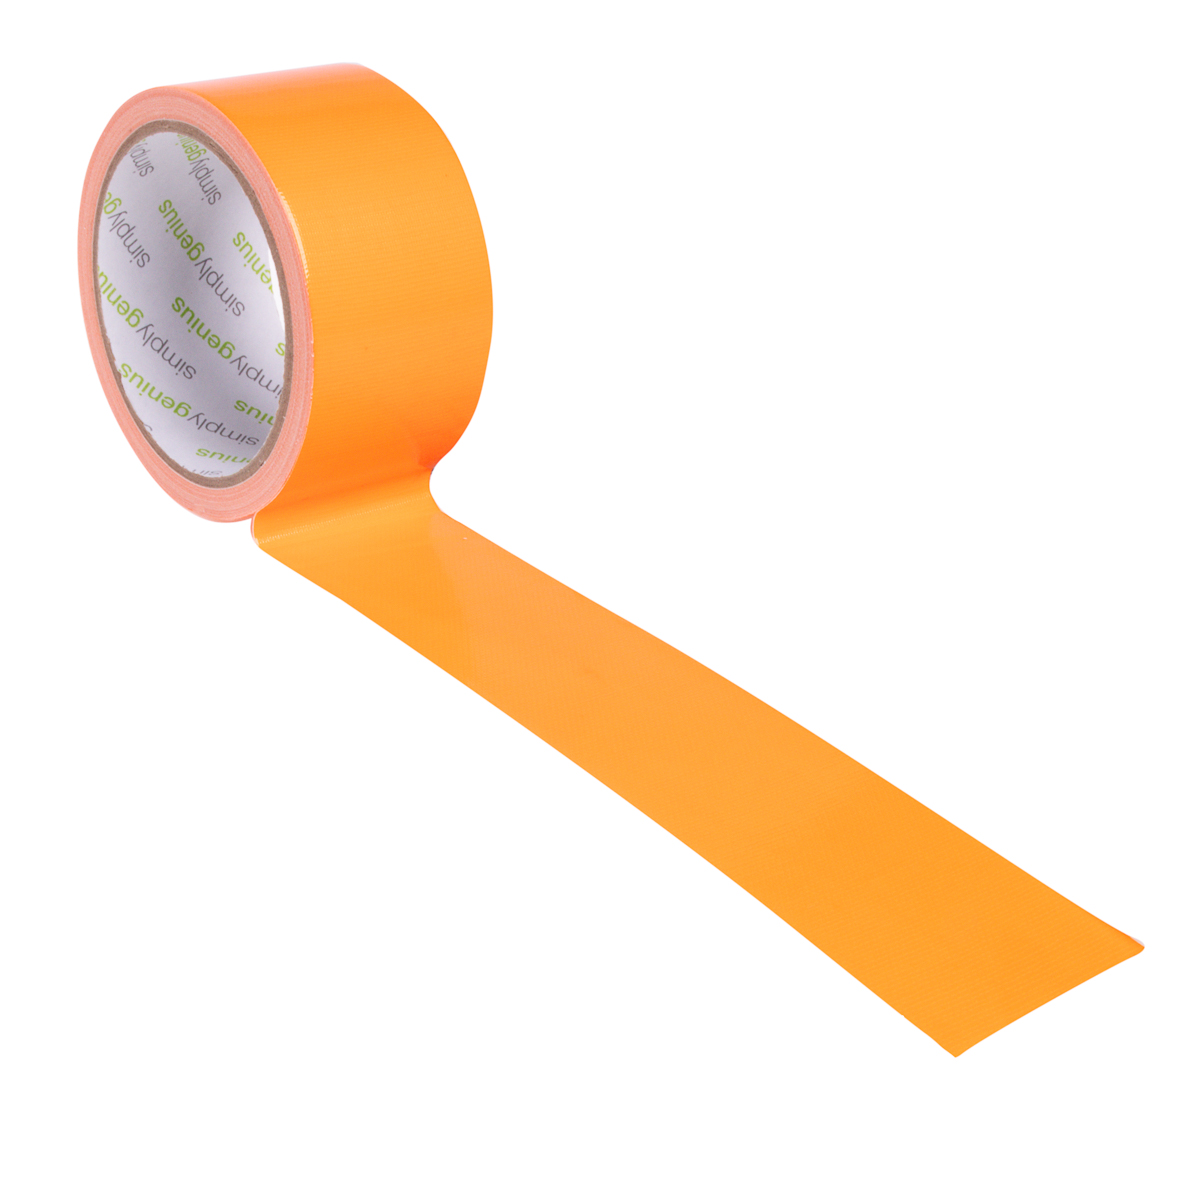 Simply-Genius-Duct-Tape-Roll-Colors-Patterns-Craft-Supplies-Colored-amp-Patterned thumbnail 178